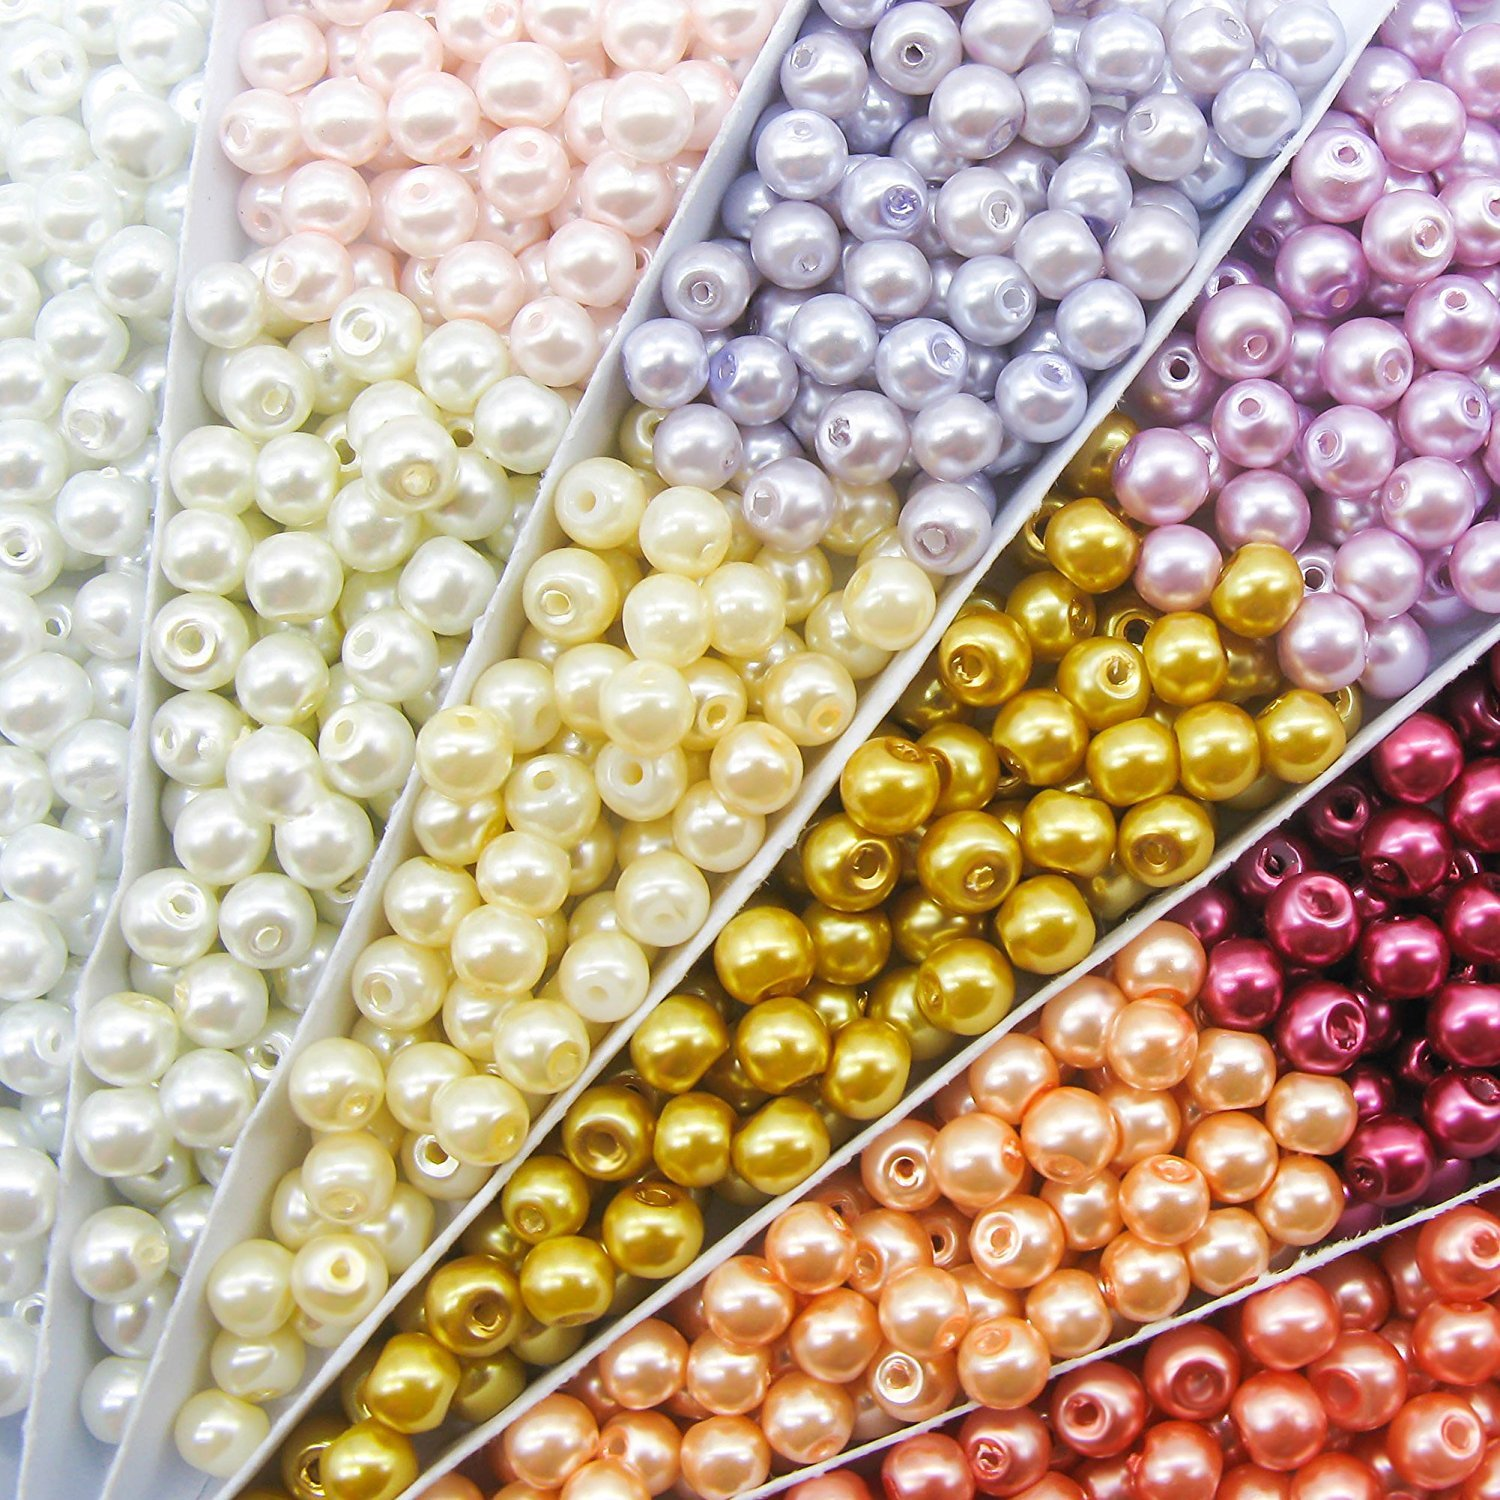 TOAOB 1000 Piece 4mm Tiny Satin Luster Round Glass Pearl Bead Loose Beads Multi Colors Wholesale Beading Kits CLB0047